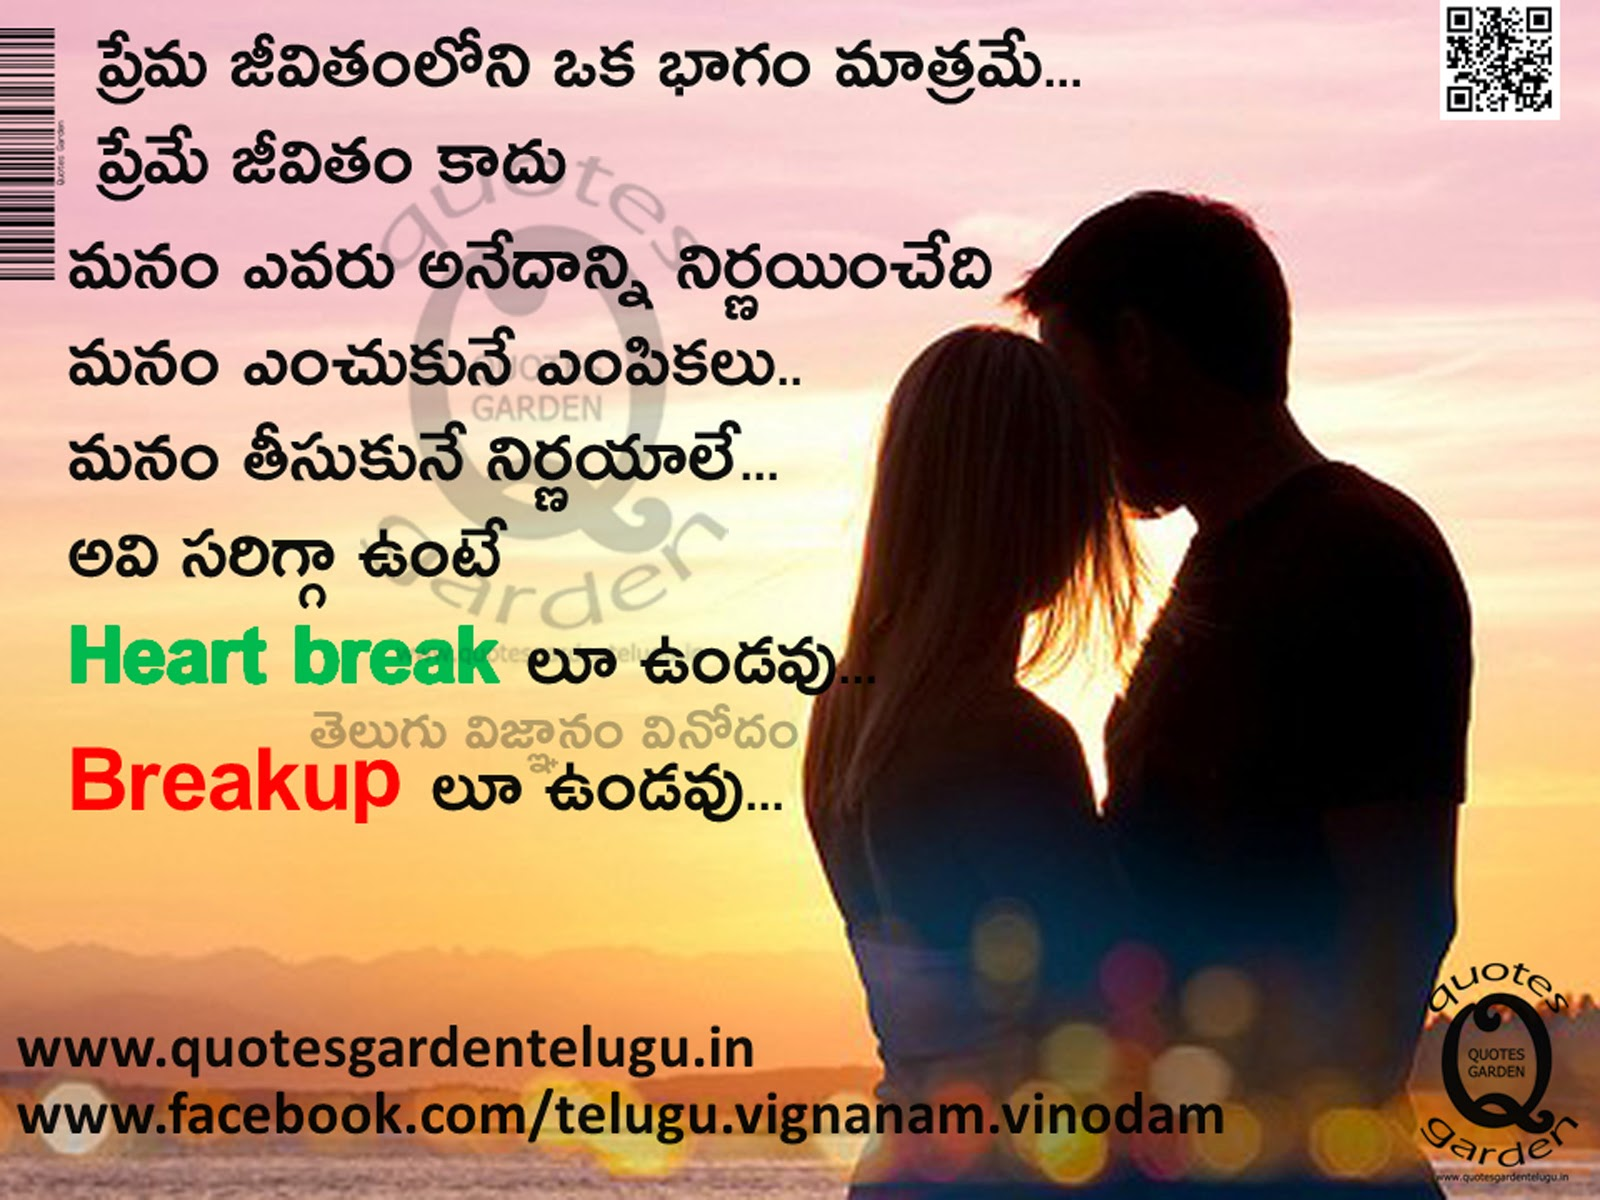 Telugu Love Quotes Cool Telugu Love And Inspirational Quotes  Quotes Garden Telugu